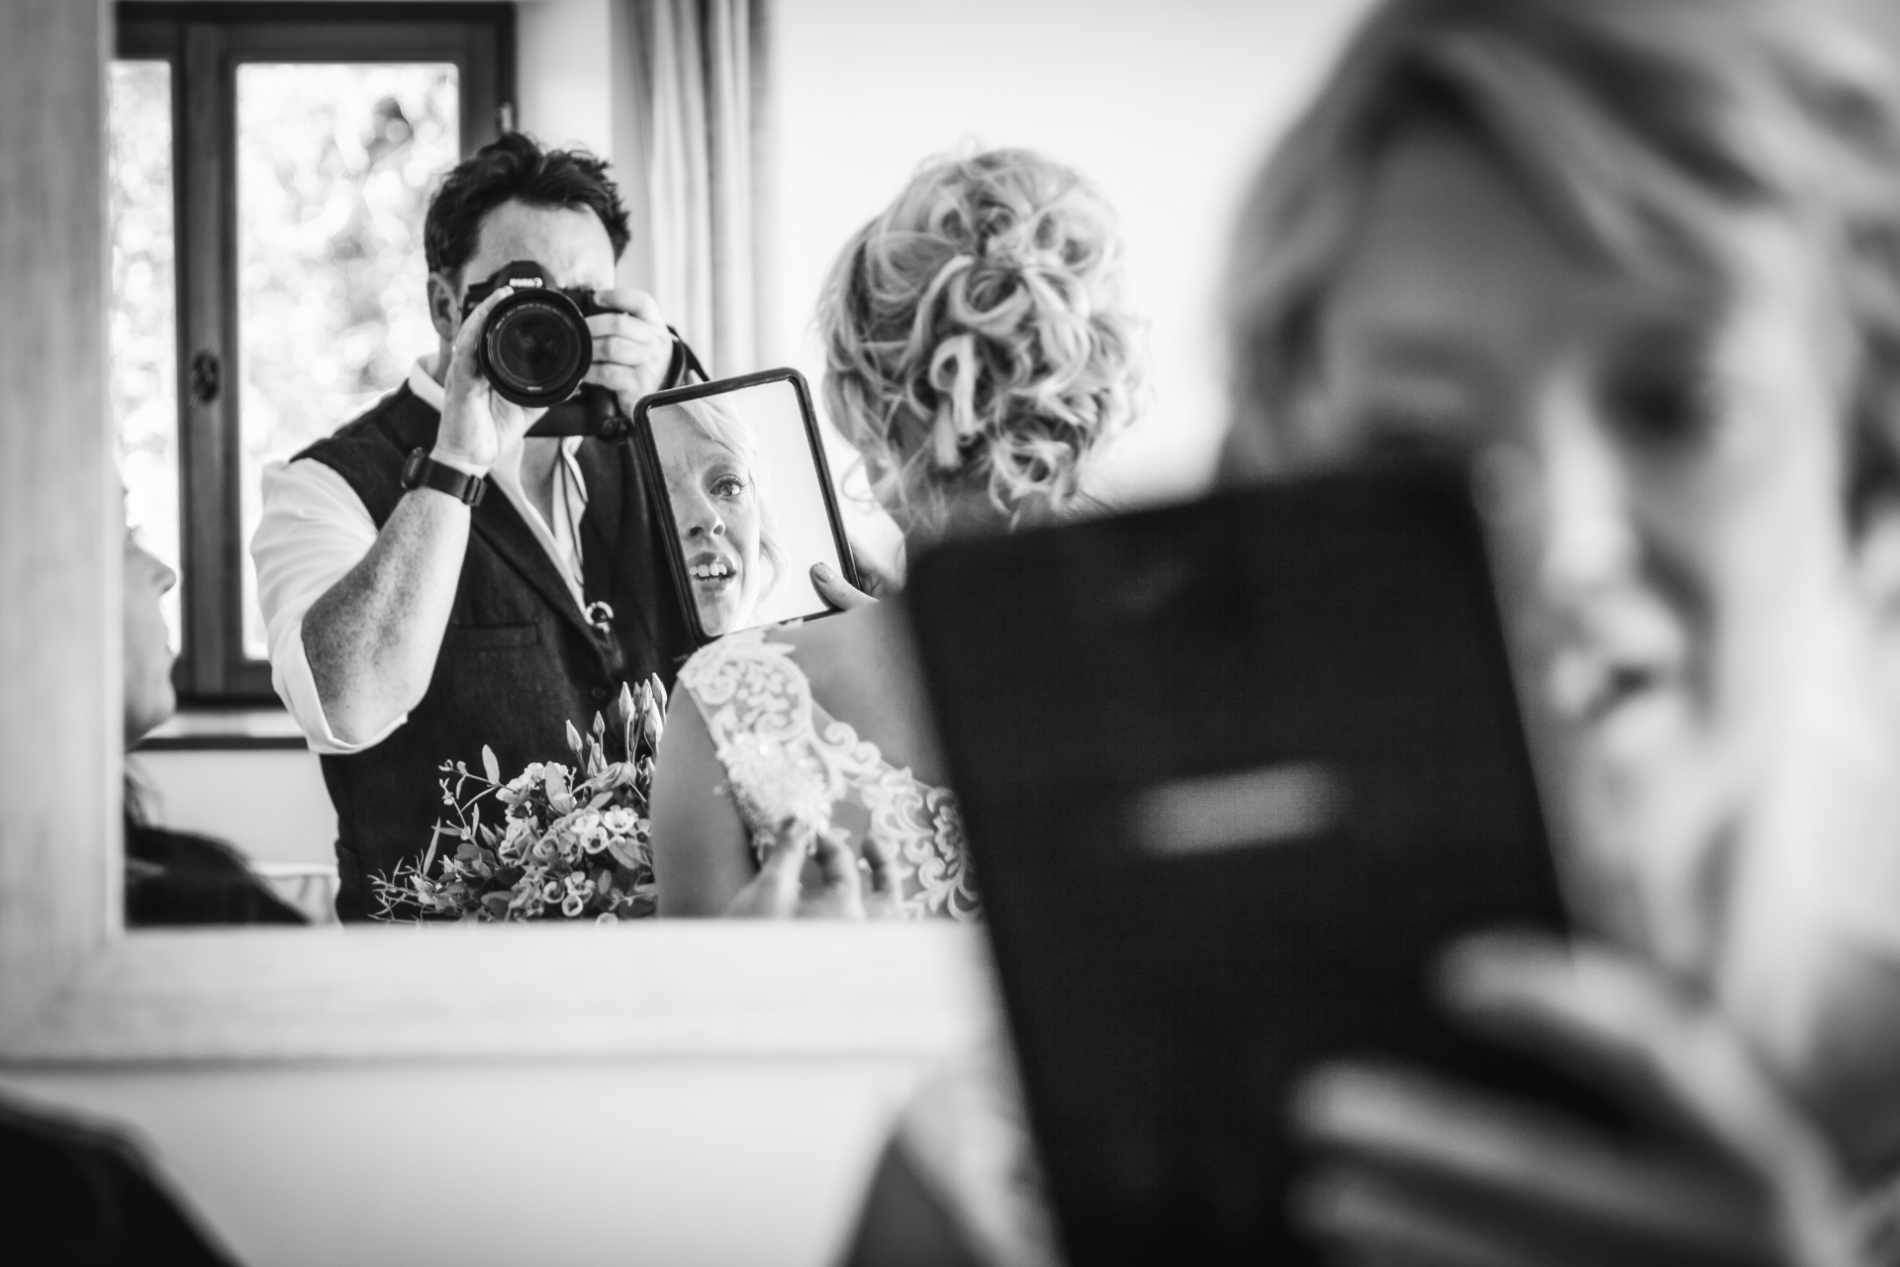 Neil Pleasants taking pictures of a bride at a wedding